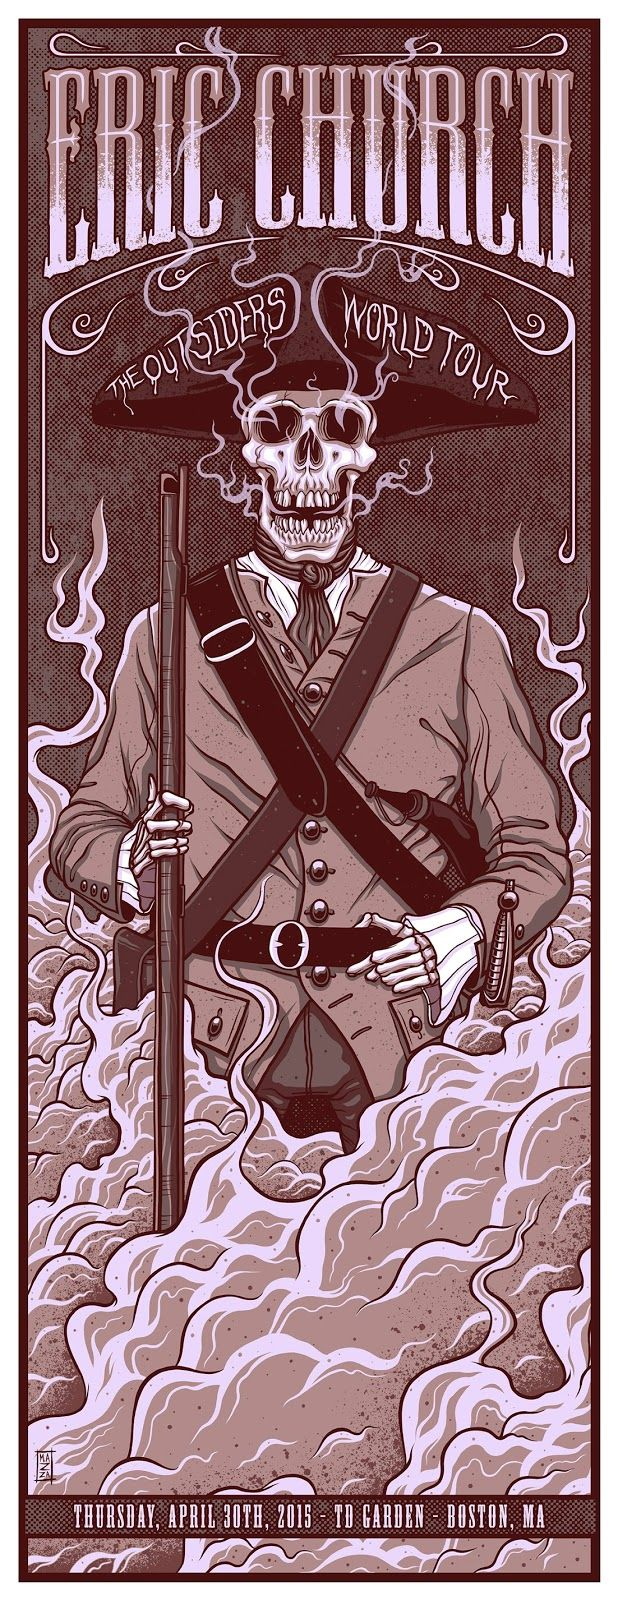 """Eric Church """"The Outsiders World Tour"""" Poster (Boston, MA) by Jim Mazza (via Inside the Rock Poster Frame)"""